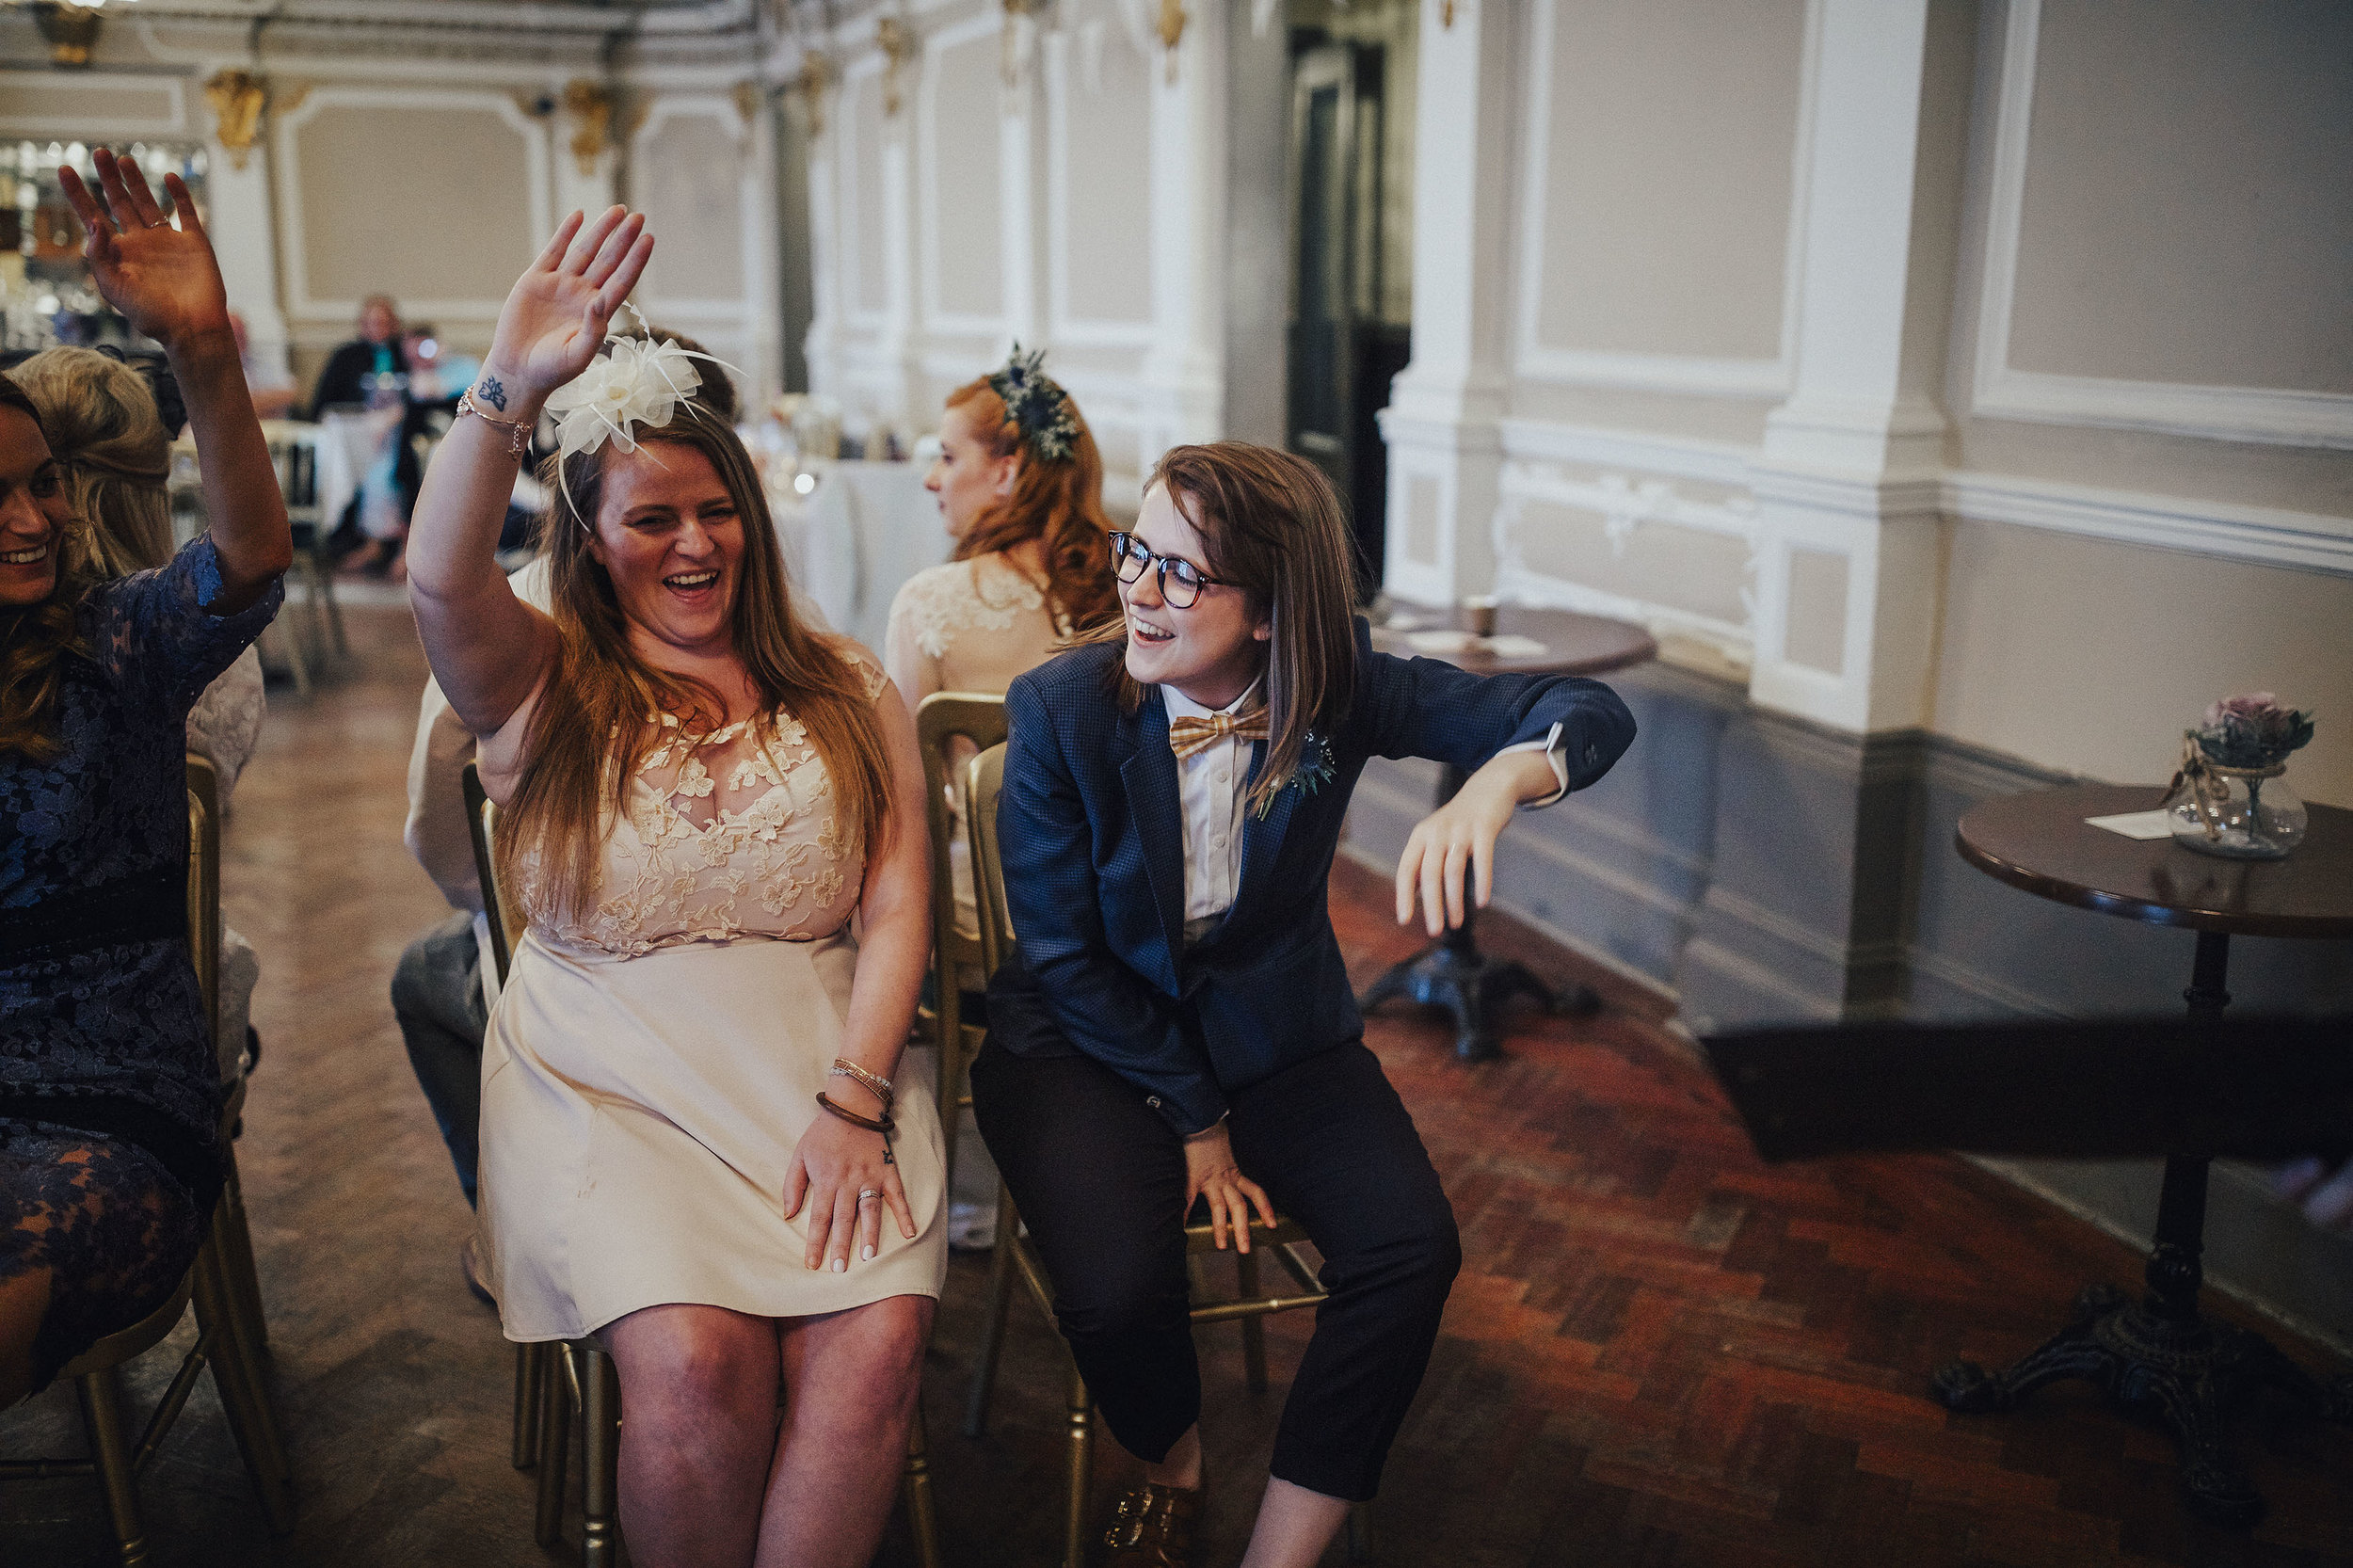 SAME_SEX_WEDDING_PHOTOGRAPHER_SLOANS_GLASGOW_PJ_PHILLIPS_PHOTOGRAPHY_91.jpg